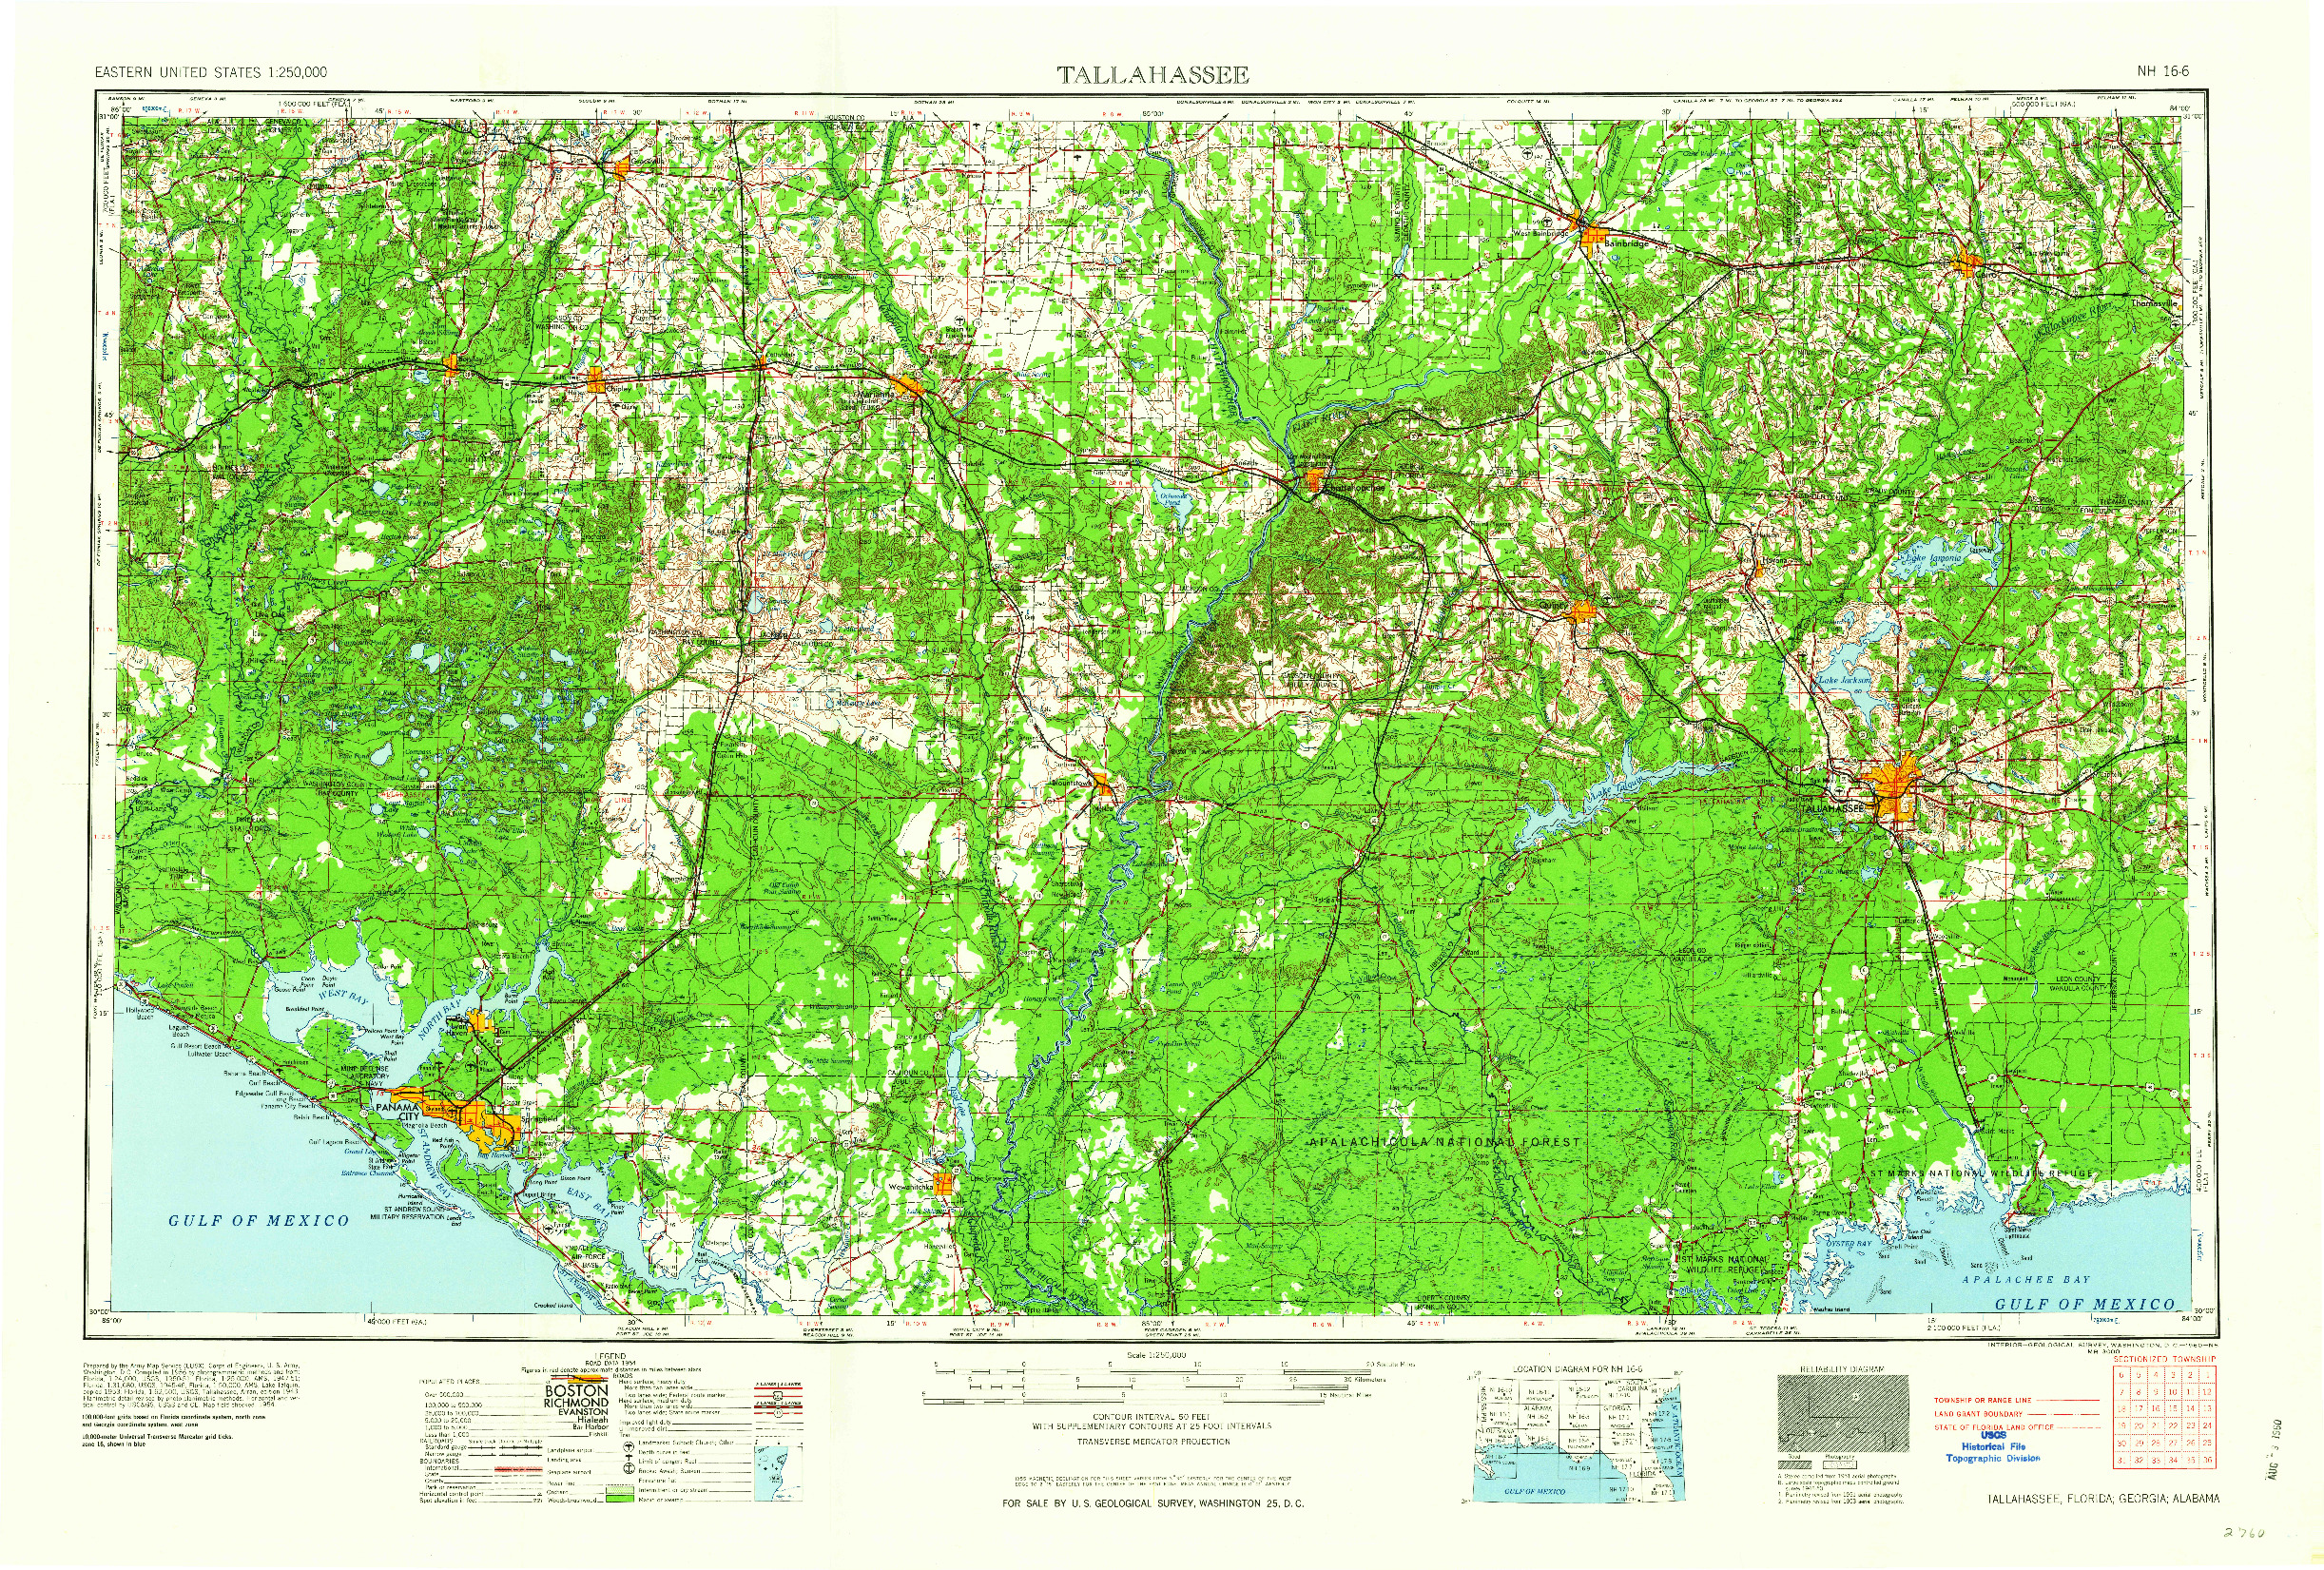 Fl Topographic Map.Usgs 1 250000 Scale Quadrangle For Tallahassee Fl 1960